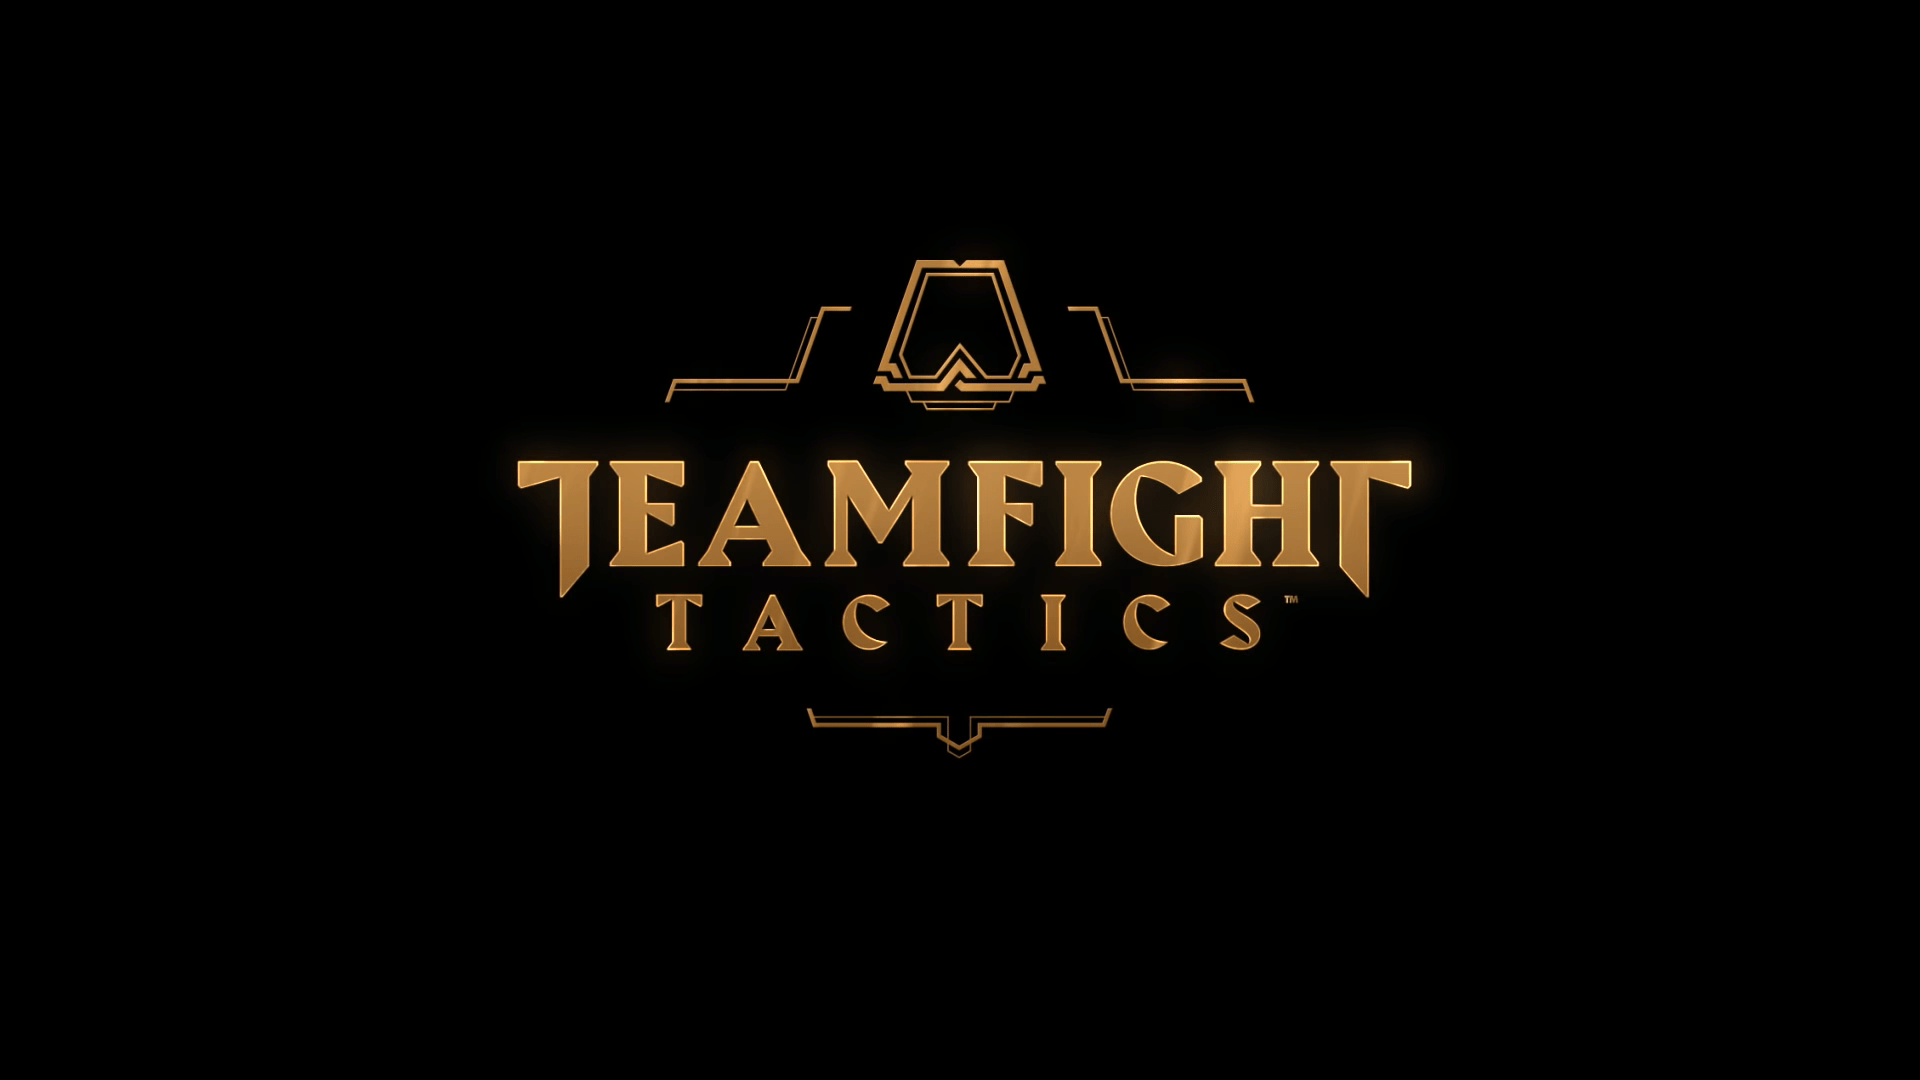 All The Big Combat Changes Coming To Teamfight Tactics In The Galaxies Update